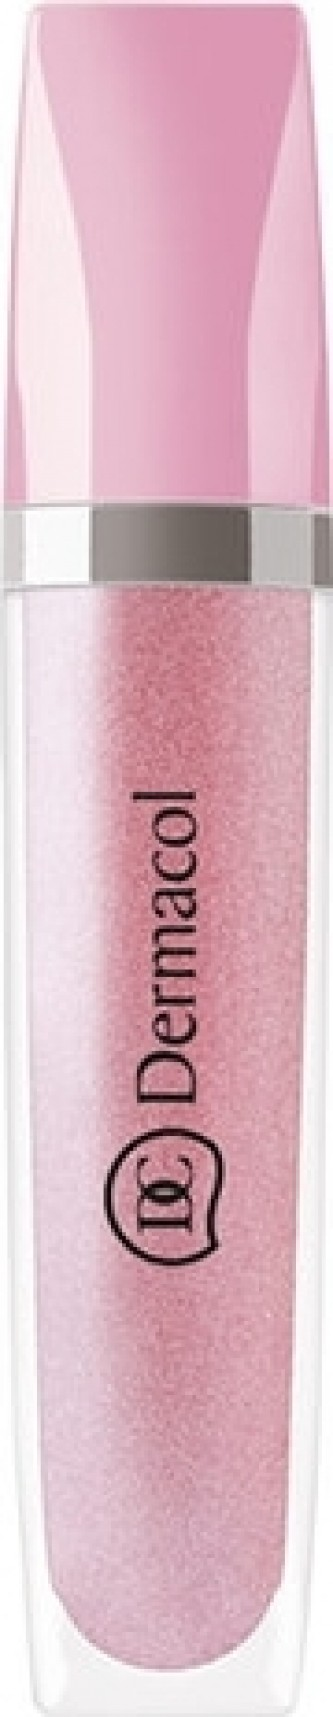 Dermacol Shimmering Lip Gloss 8 ml 1